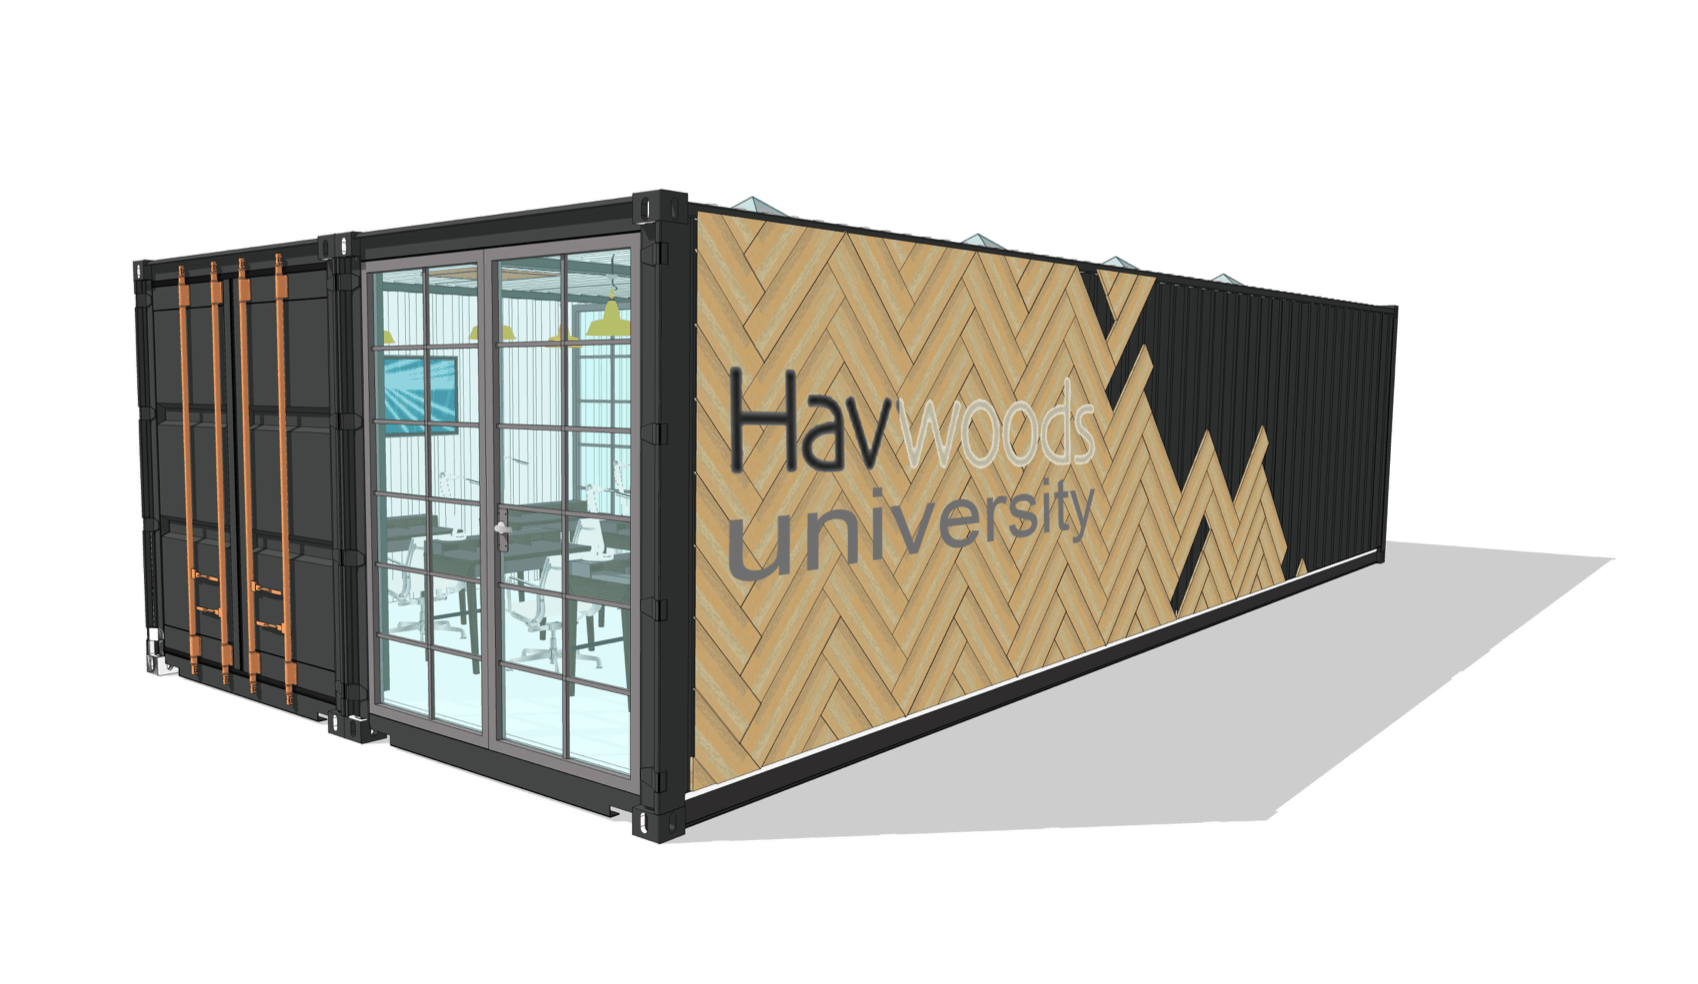 Shipping container classroom concept design